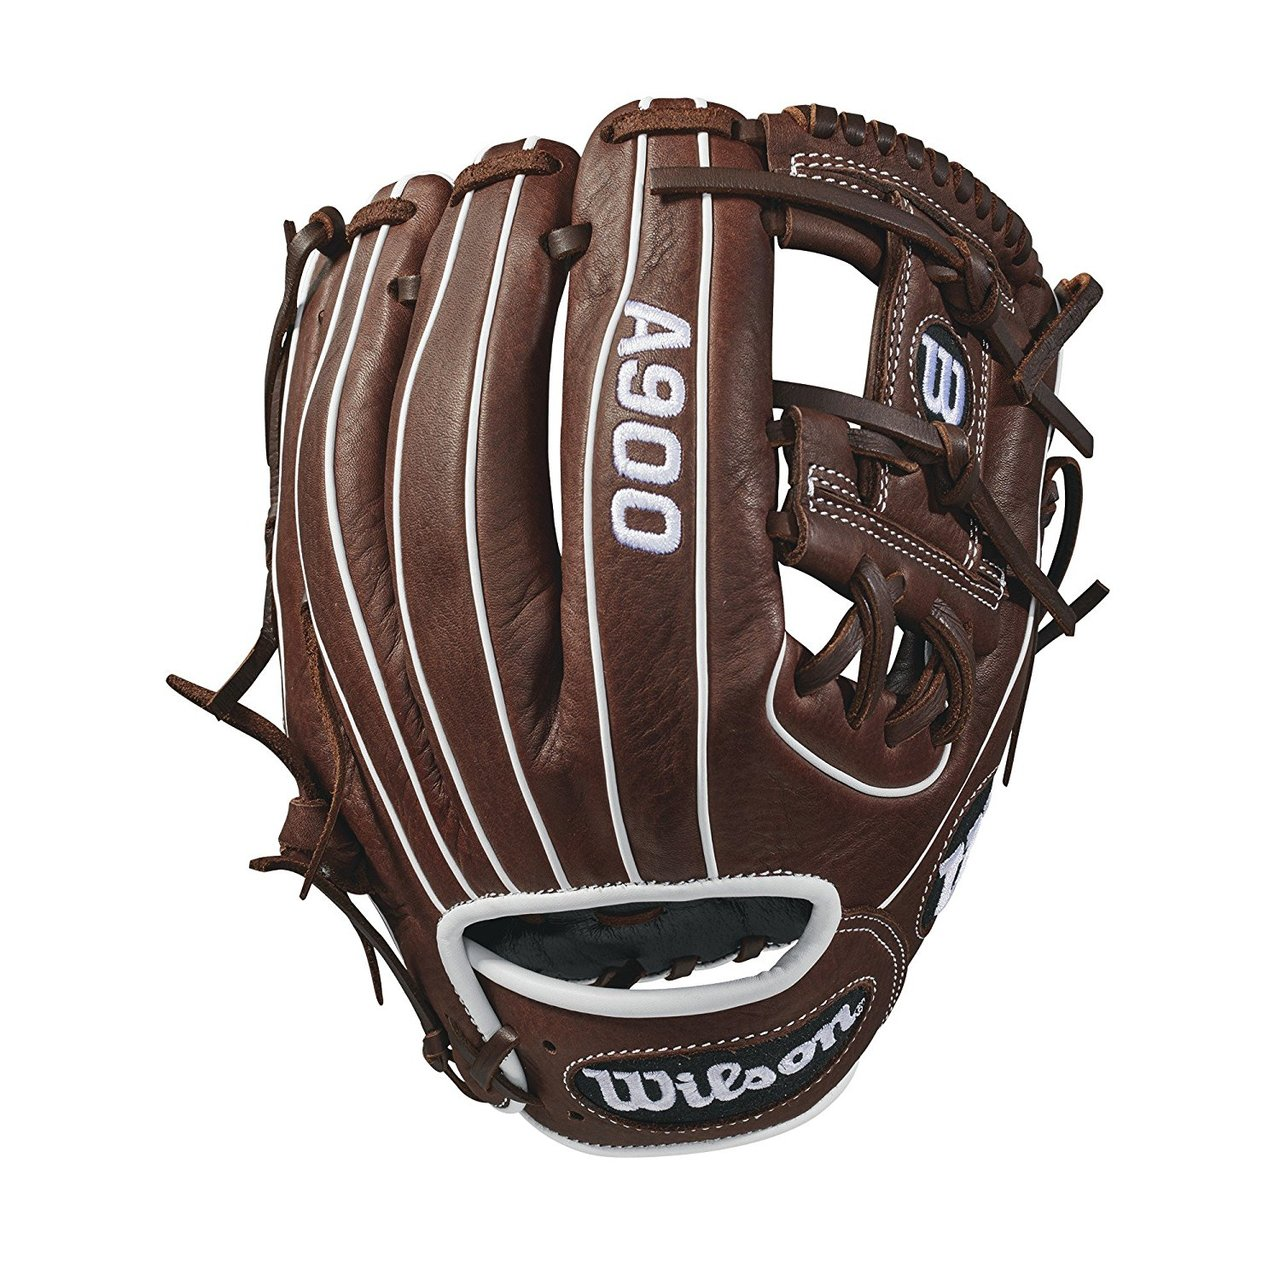 wilson-2018-a900-baseball-glove-11-5-right-hand-throw WTA09RB18115-RightHandThrow Wilson 887768593896 The 11.5 Wilson A900 Baseball glove is made for young advanced